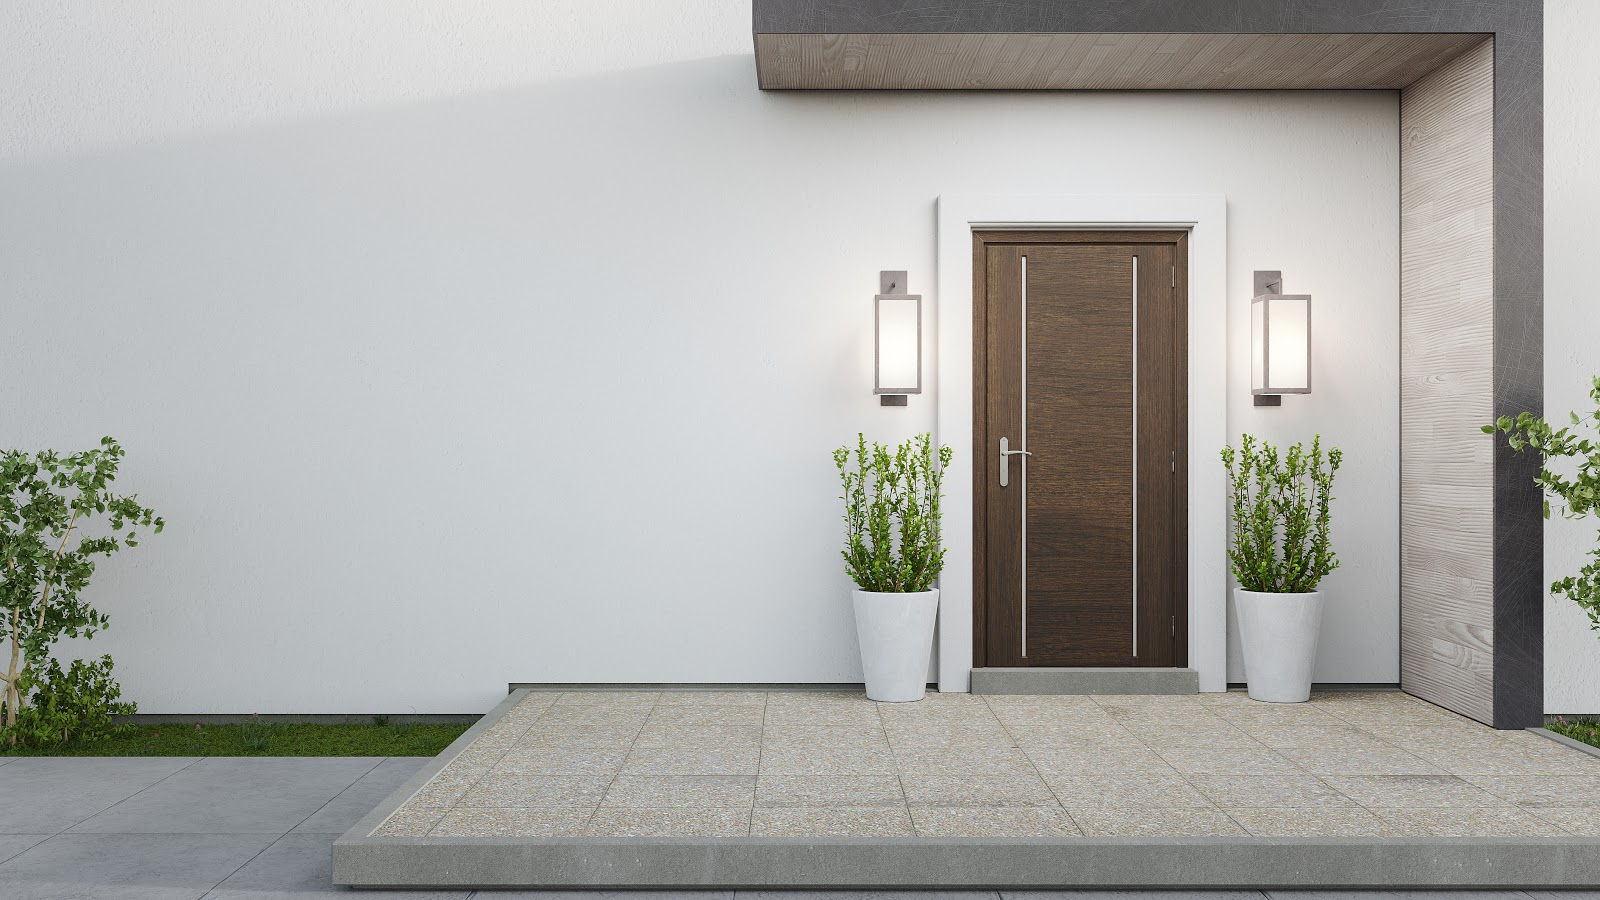 Solid wooden front door with plants on both sides